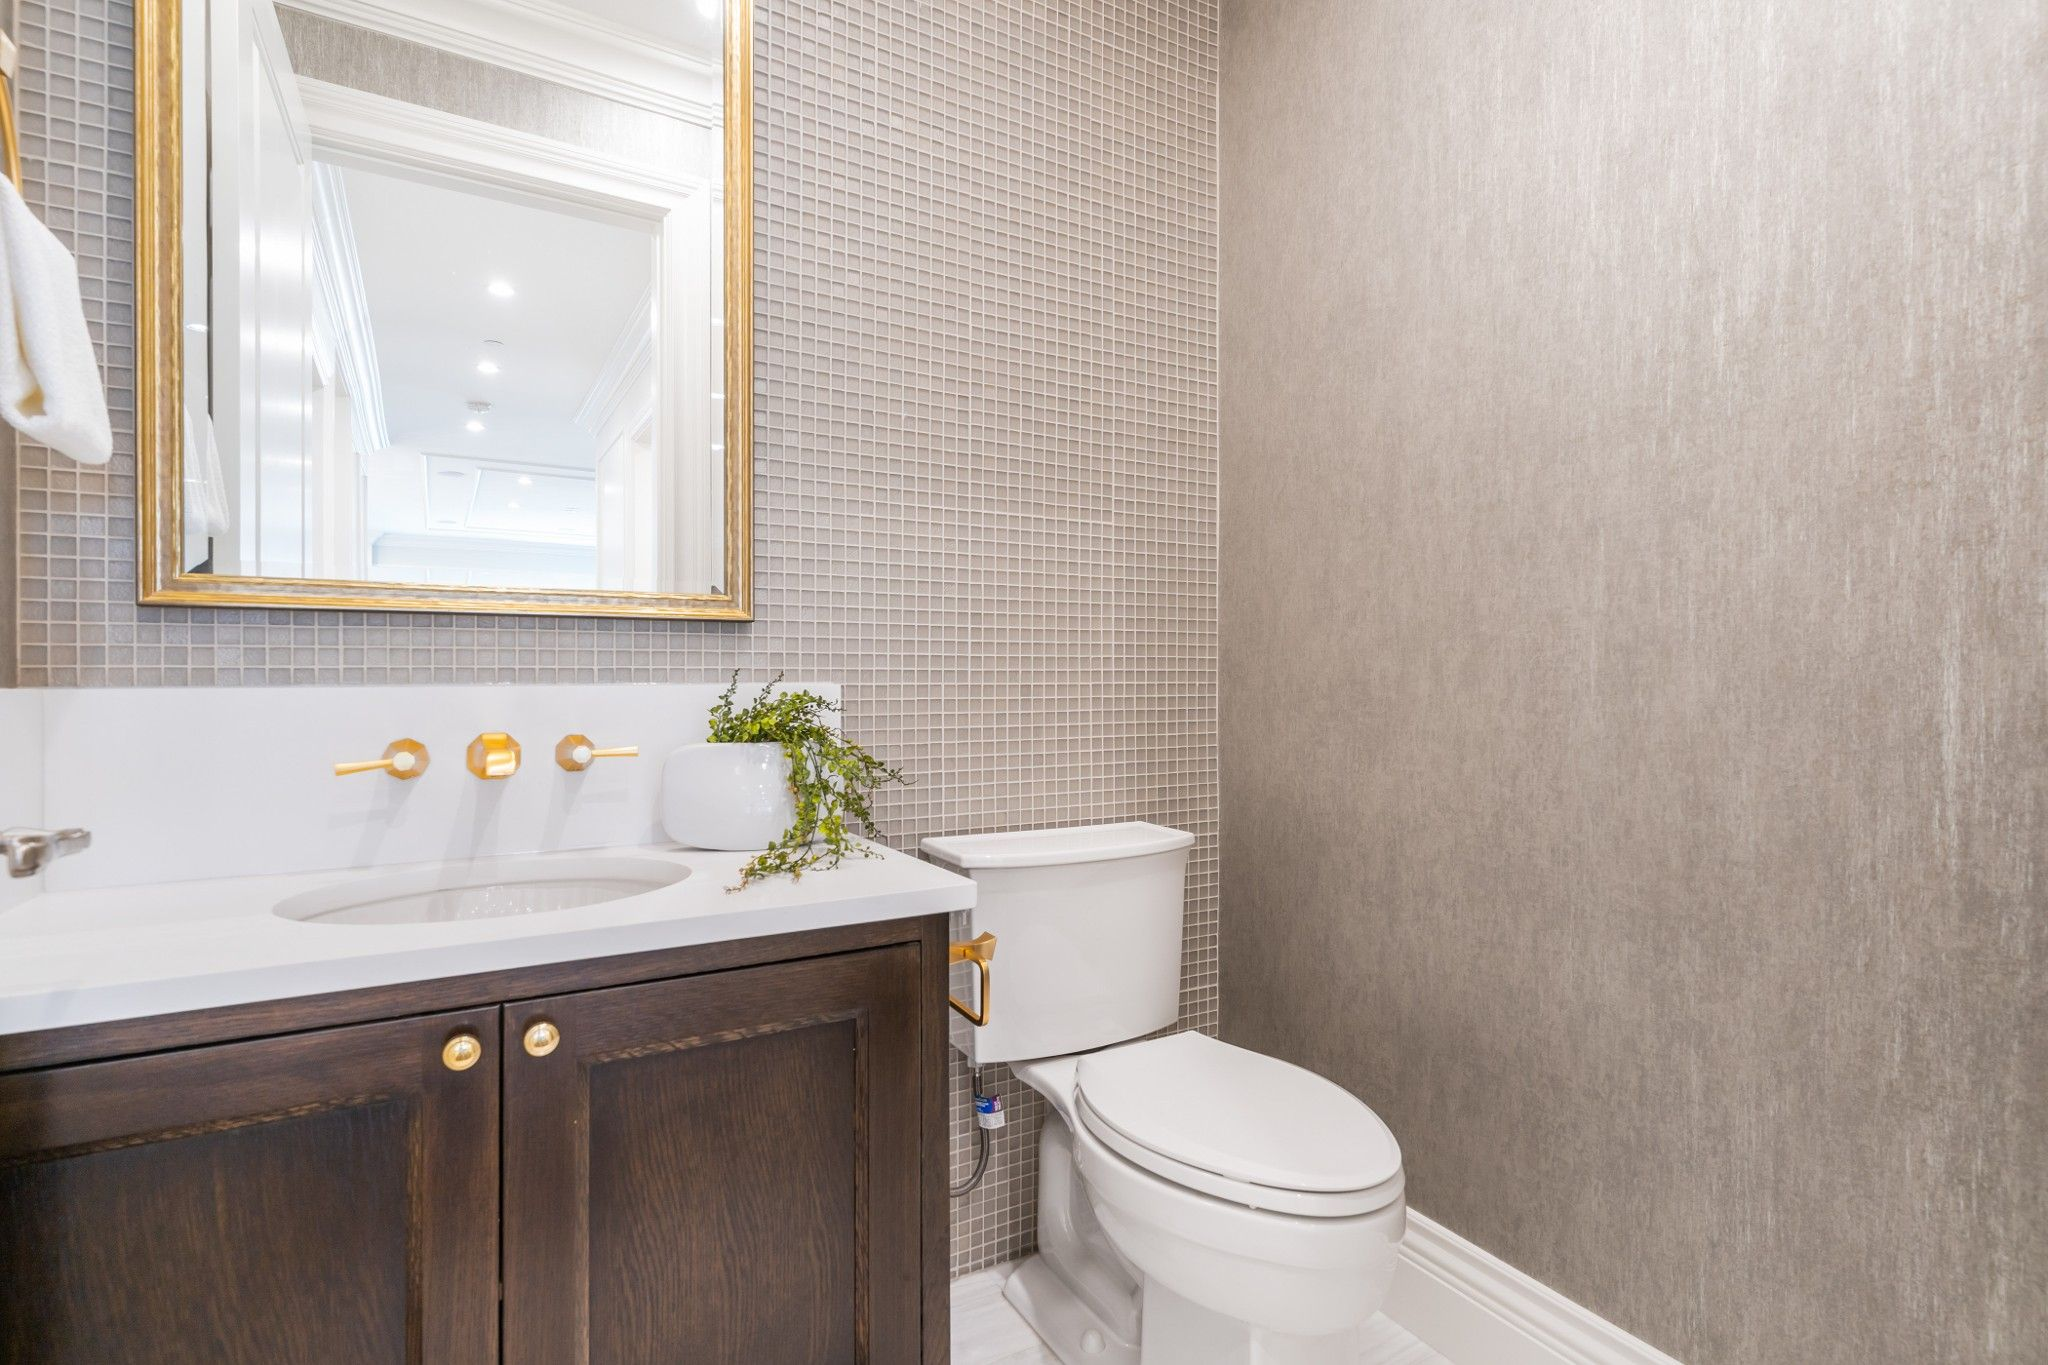 Photo 128: Photos: 5756 ALMA STREET in VANCOUVER: Southlands House for sale (Vancouver West)  : MLS®# R2588229